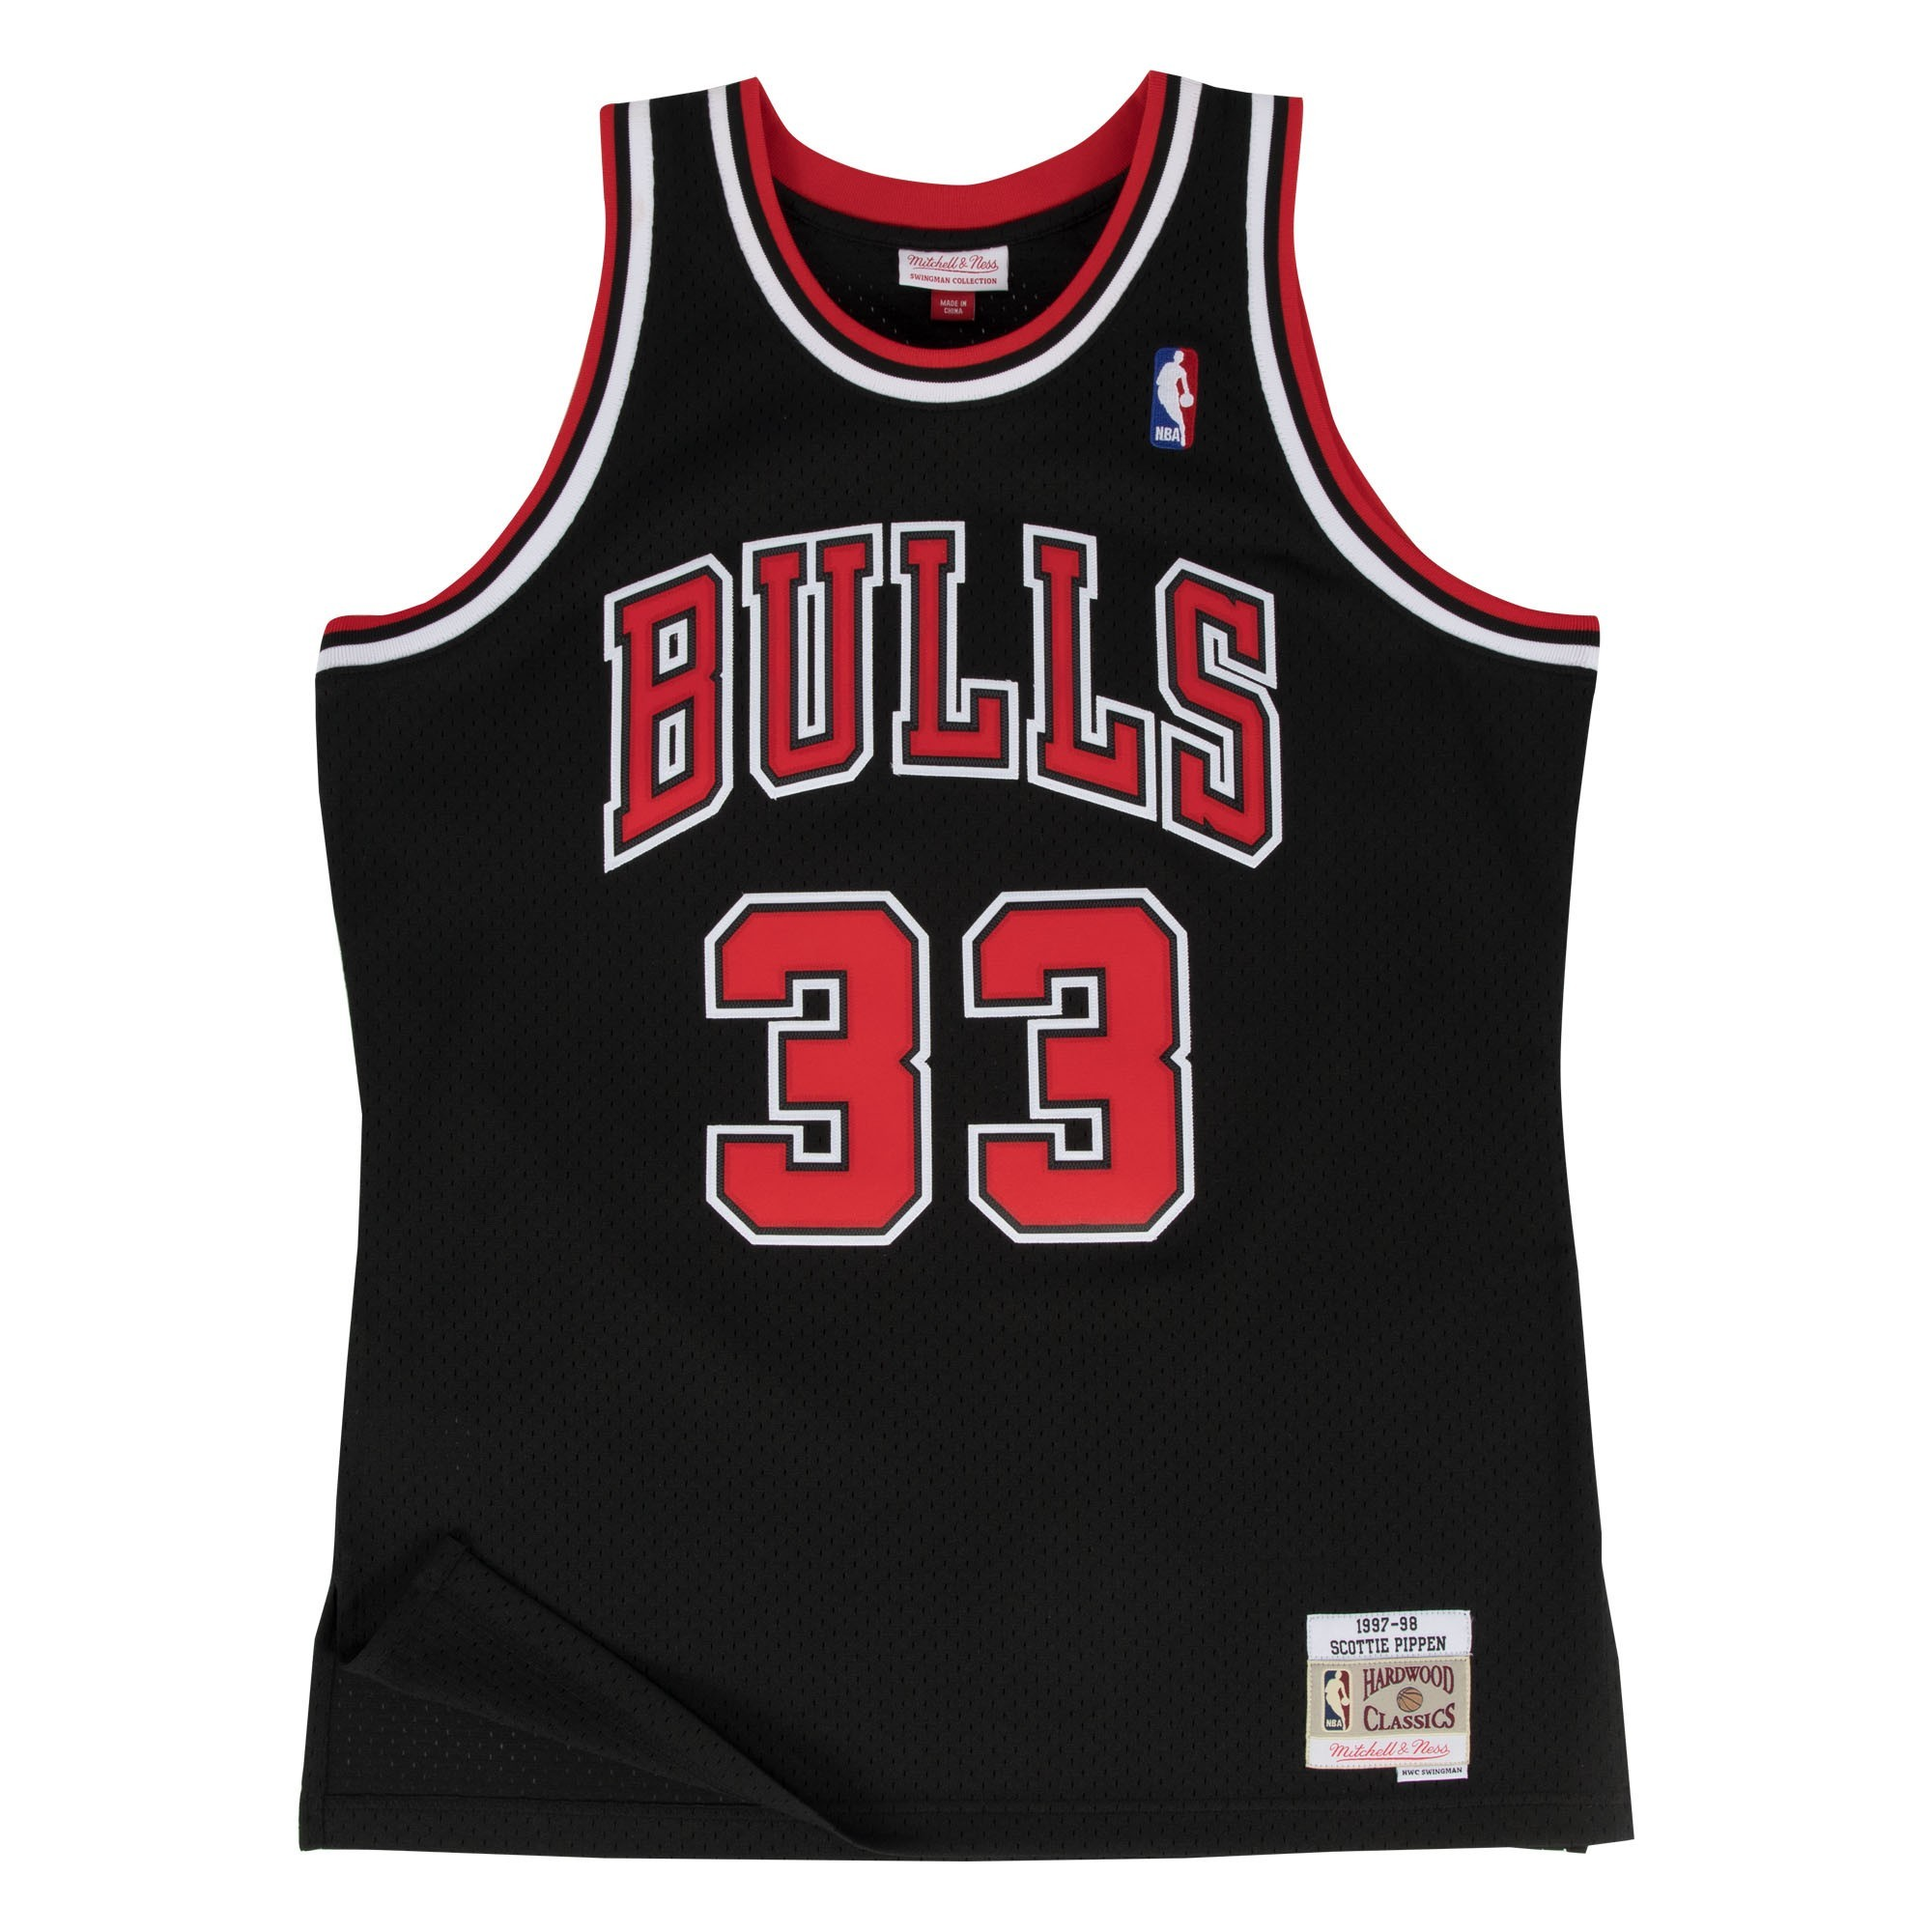 bf39e229d Details about Scottie Pippen Chicago Bulls Mitchell   Ness NBA Throwback  Jersey - Black